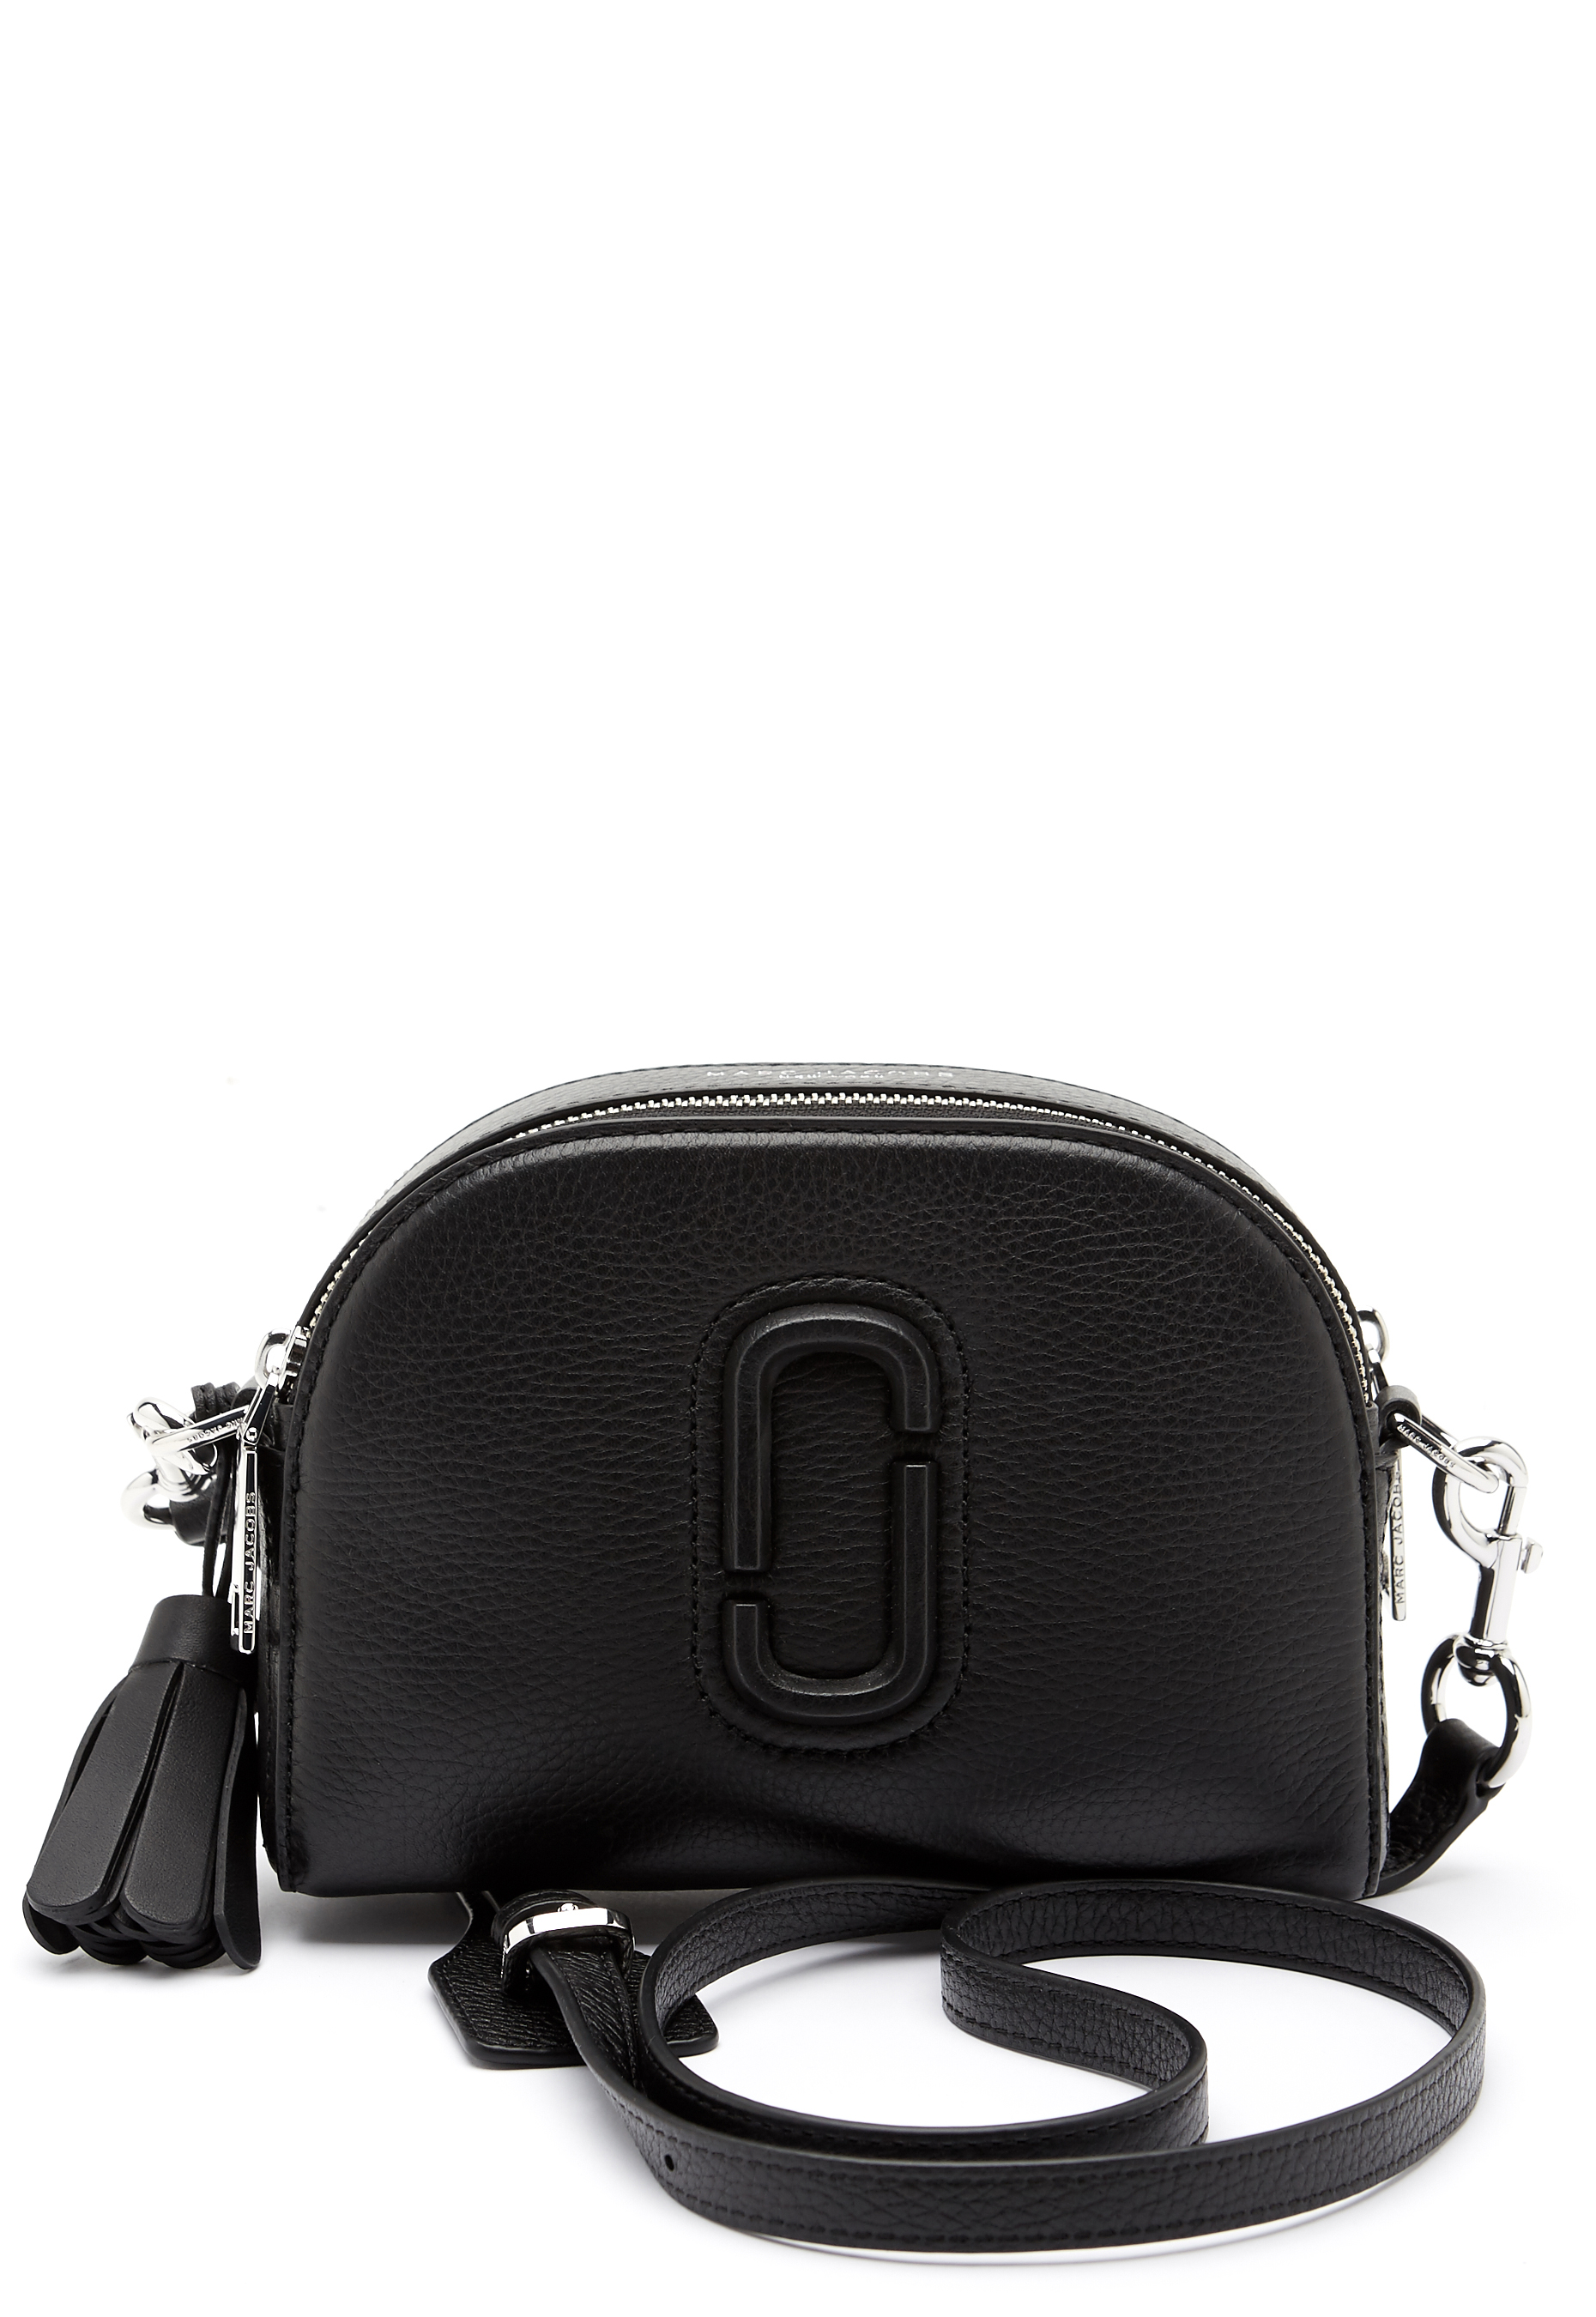 Shoppa The Marc Jacobs Shutter Svart | Vesker